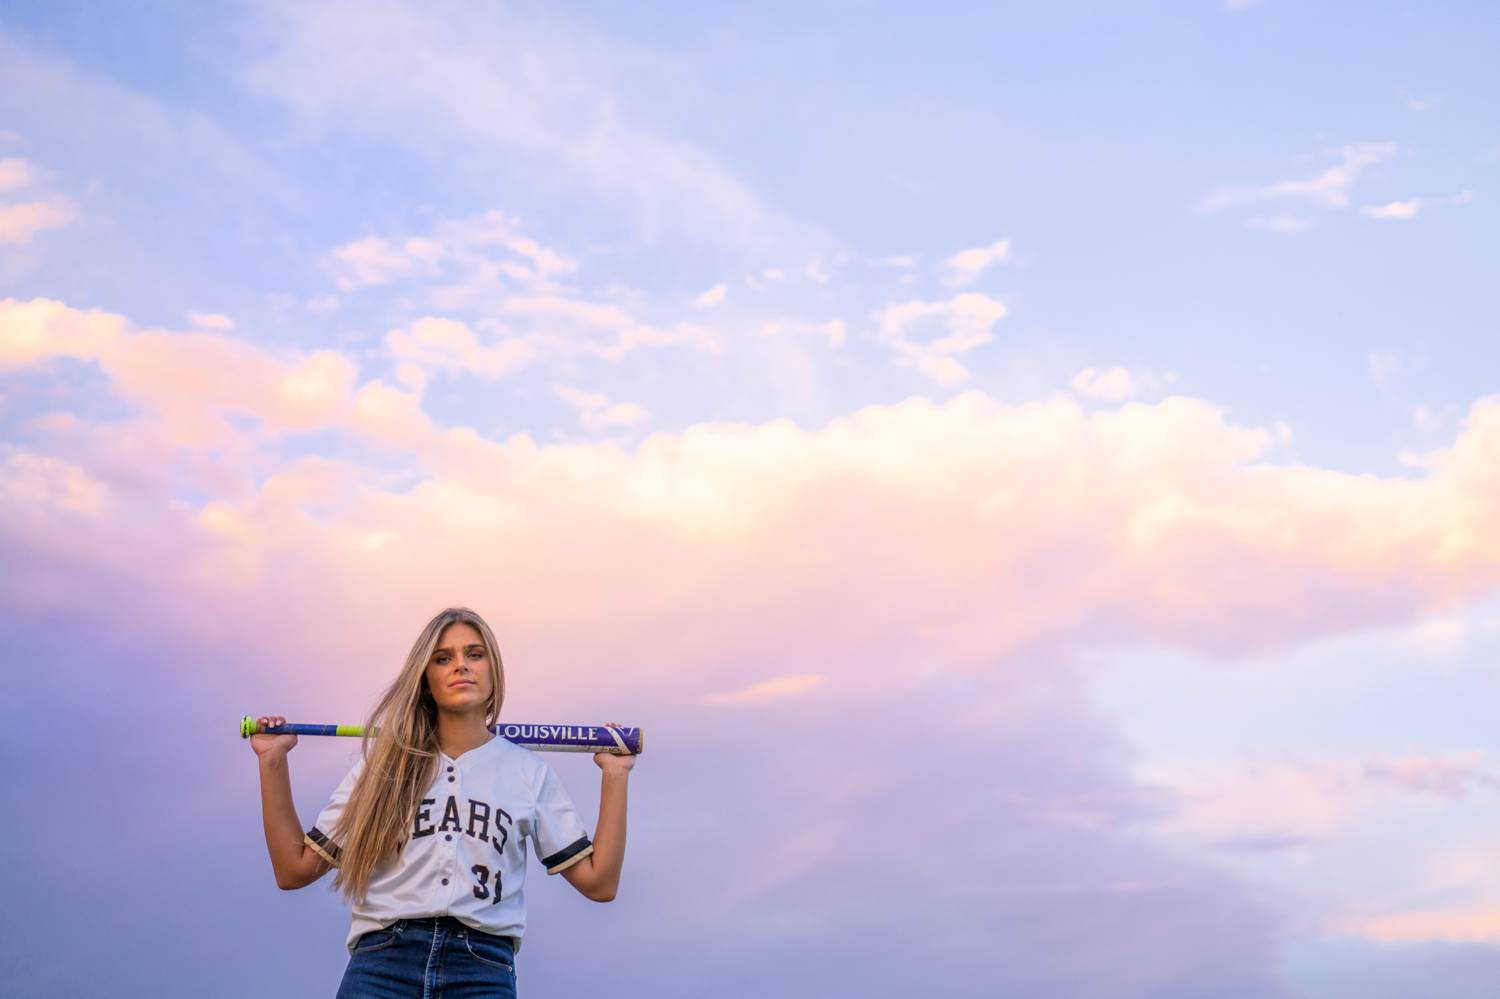 A senior girl holds a baseball bat over her shoulders. Behind her are clouds and a purpose sky at sunset.